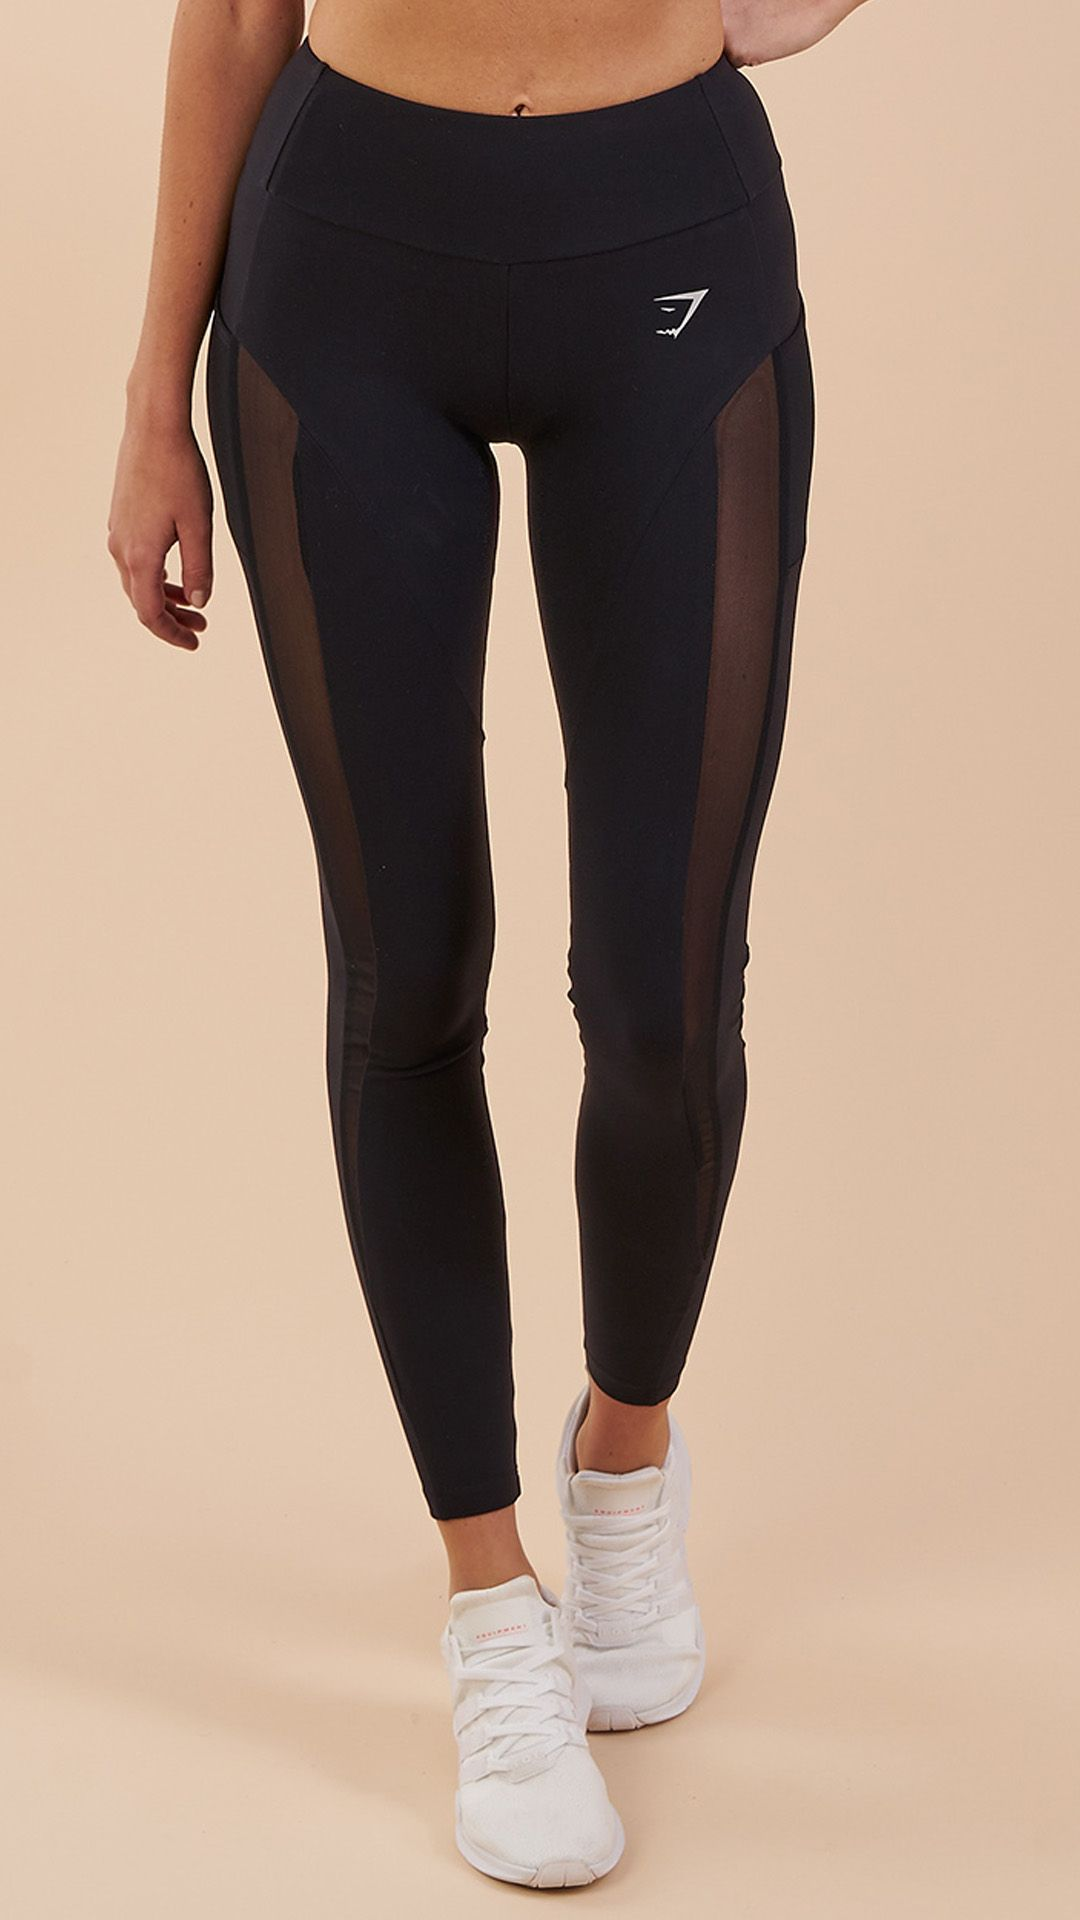 4736f3befd3dcd The Gymshark Women's Sleek Aspire Leggings are the unbelievably stylish  wardrobe addition you have been looking for. #gymshark